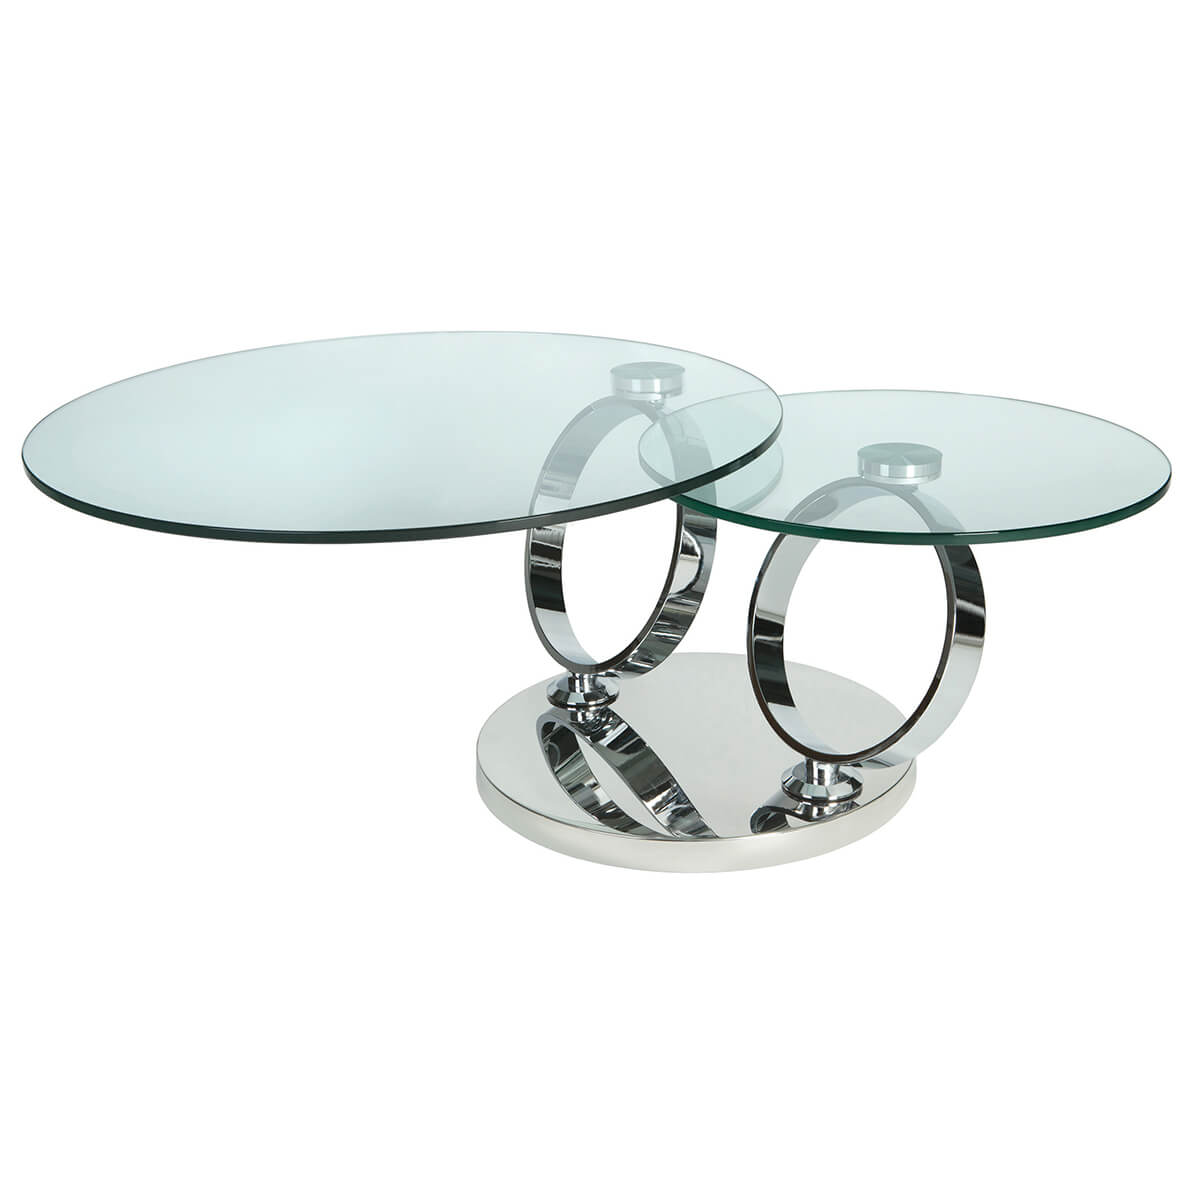 Magic Rotating Glass Coffee Table Stainless Steel Coffee Tables Fads